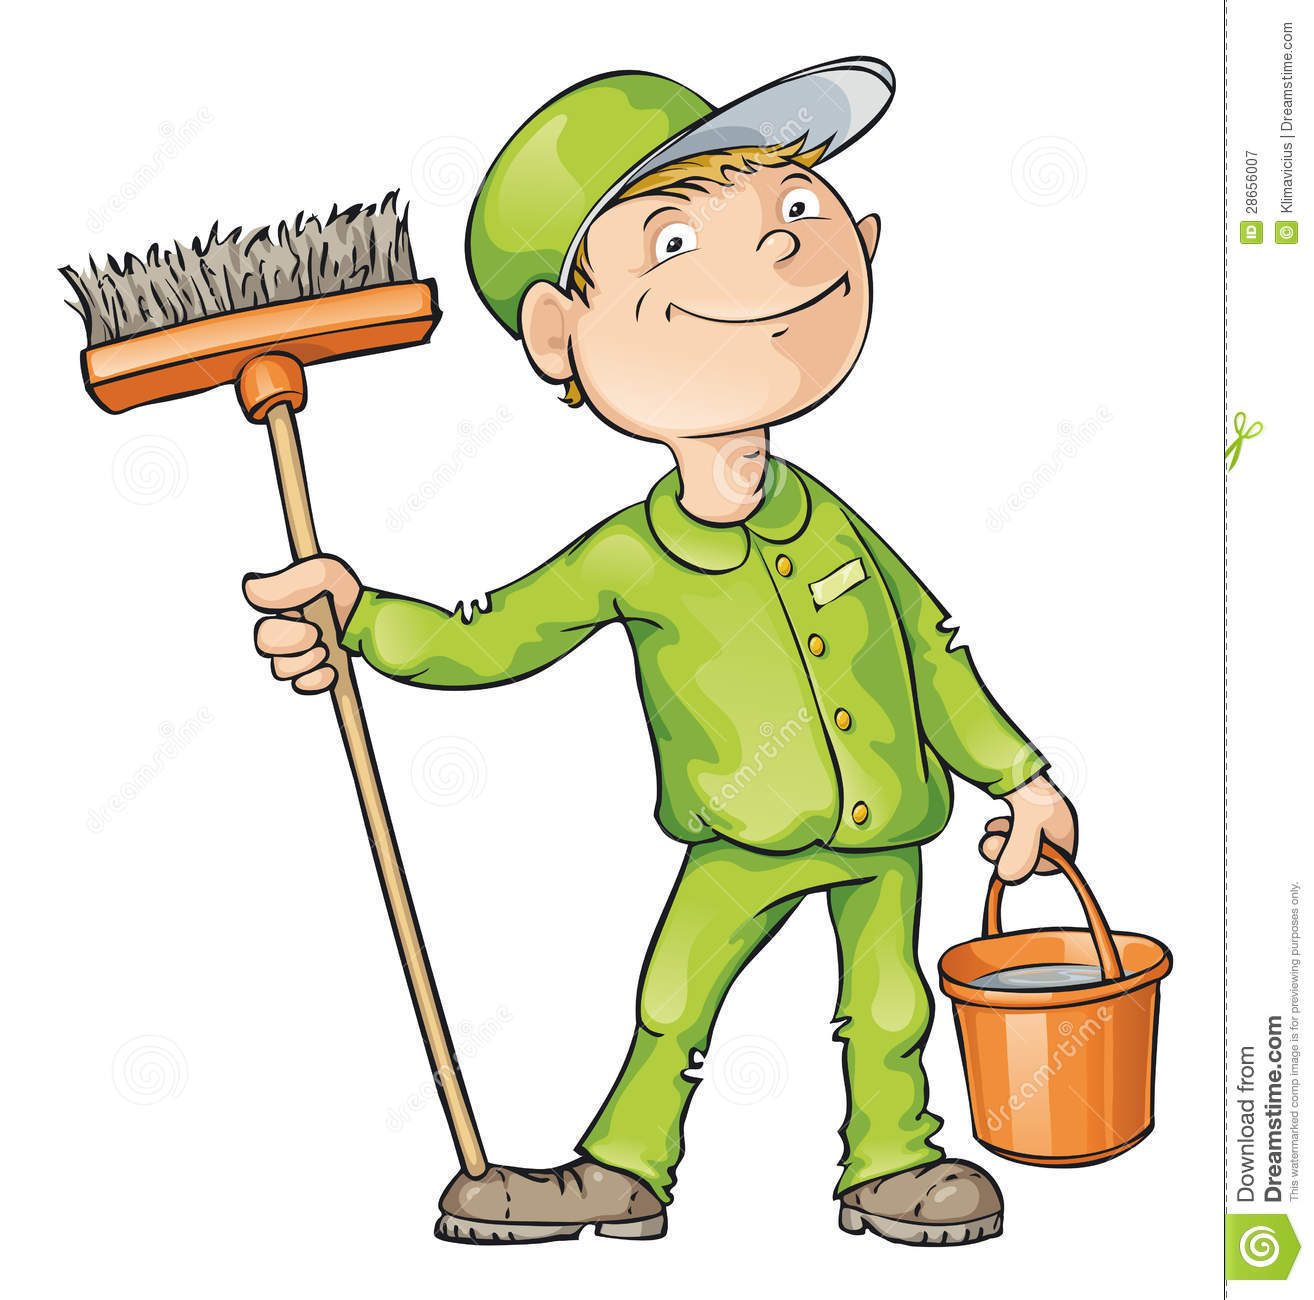 Cleaner Holding A Brush And Bucket Royalty Free Stock